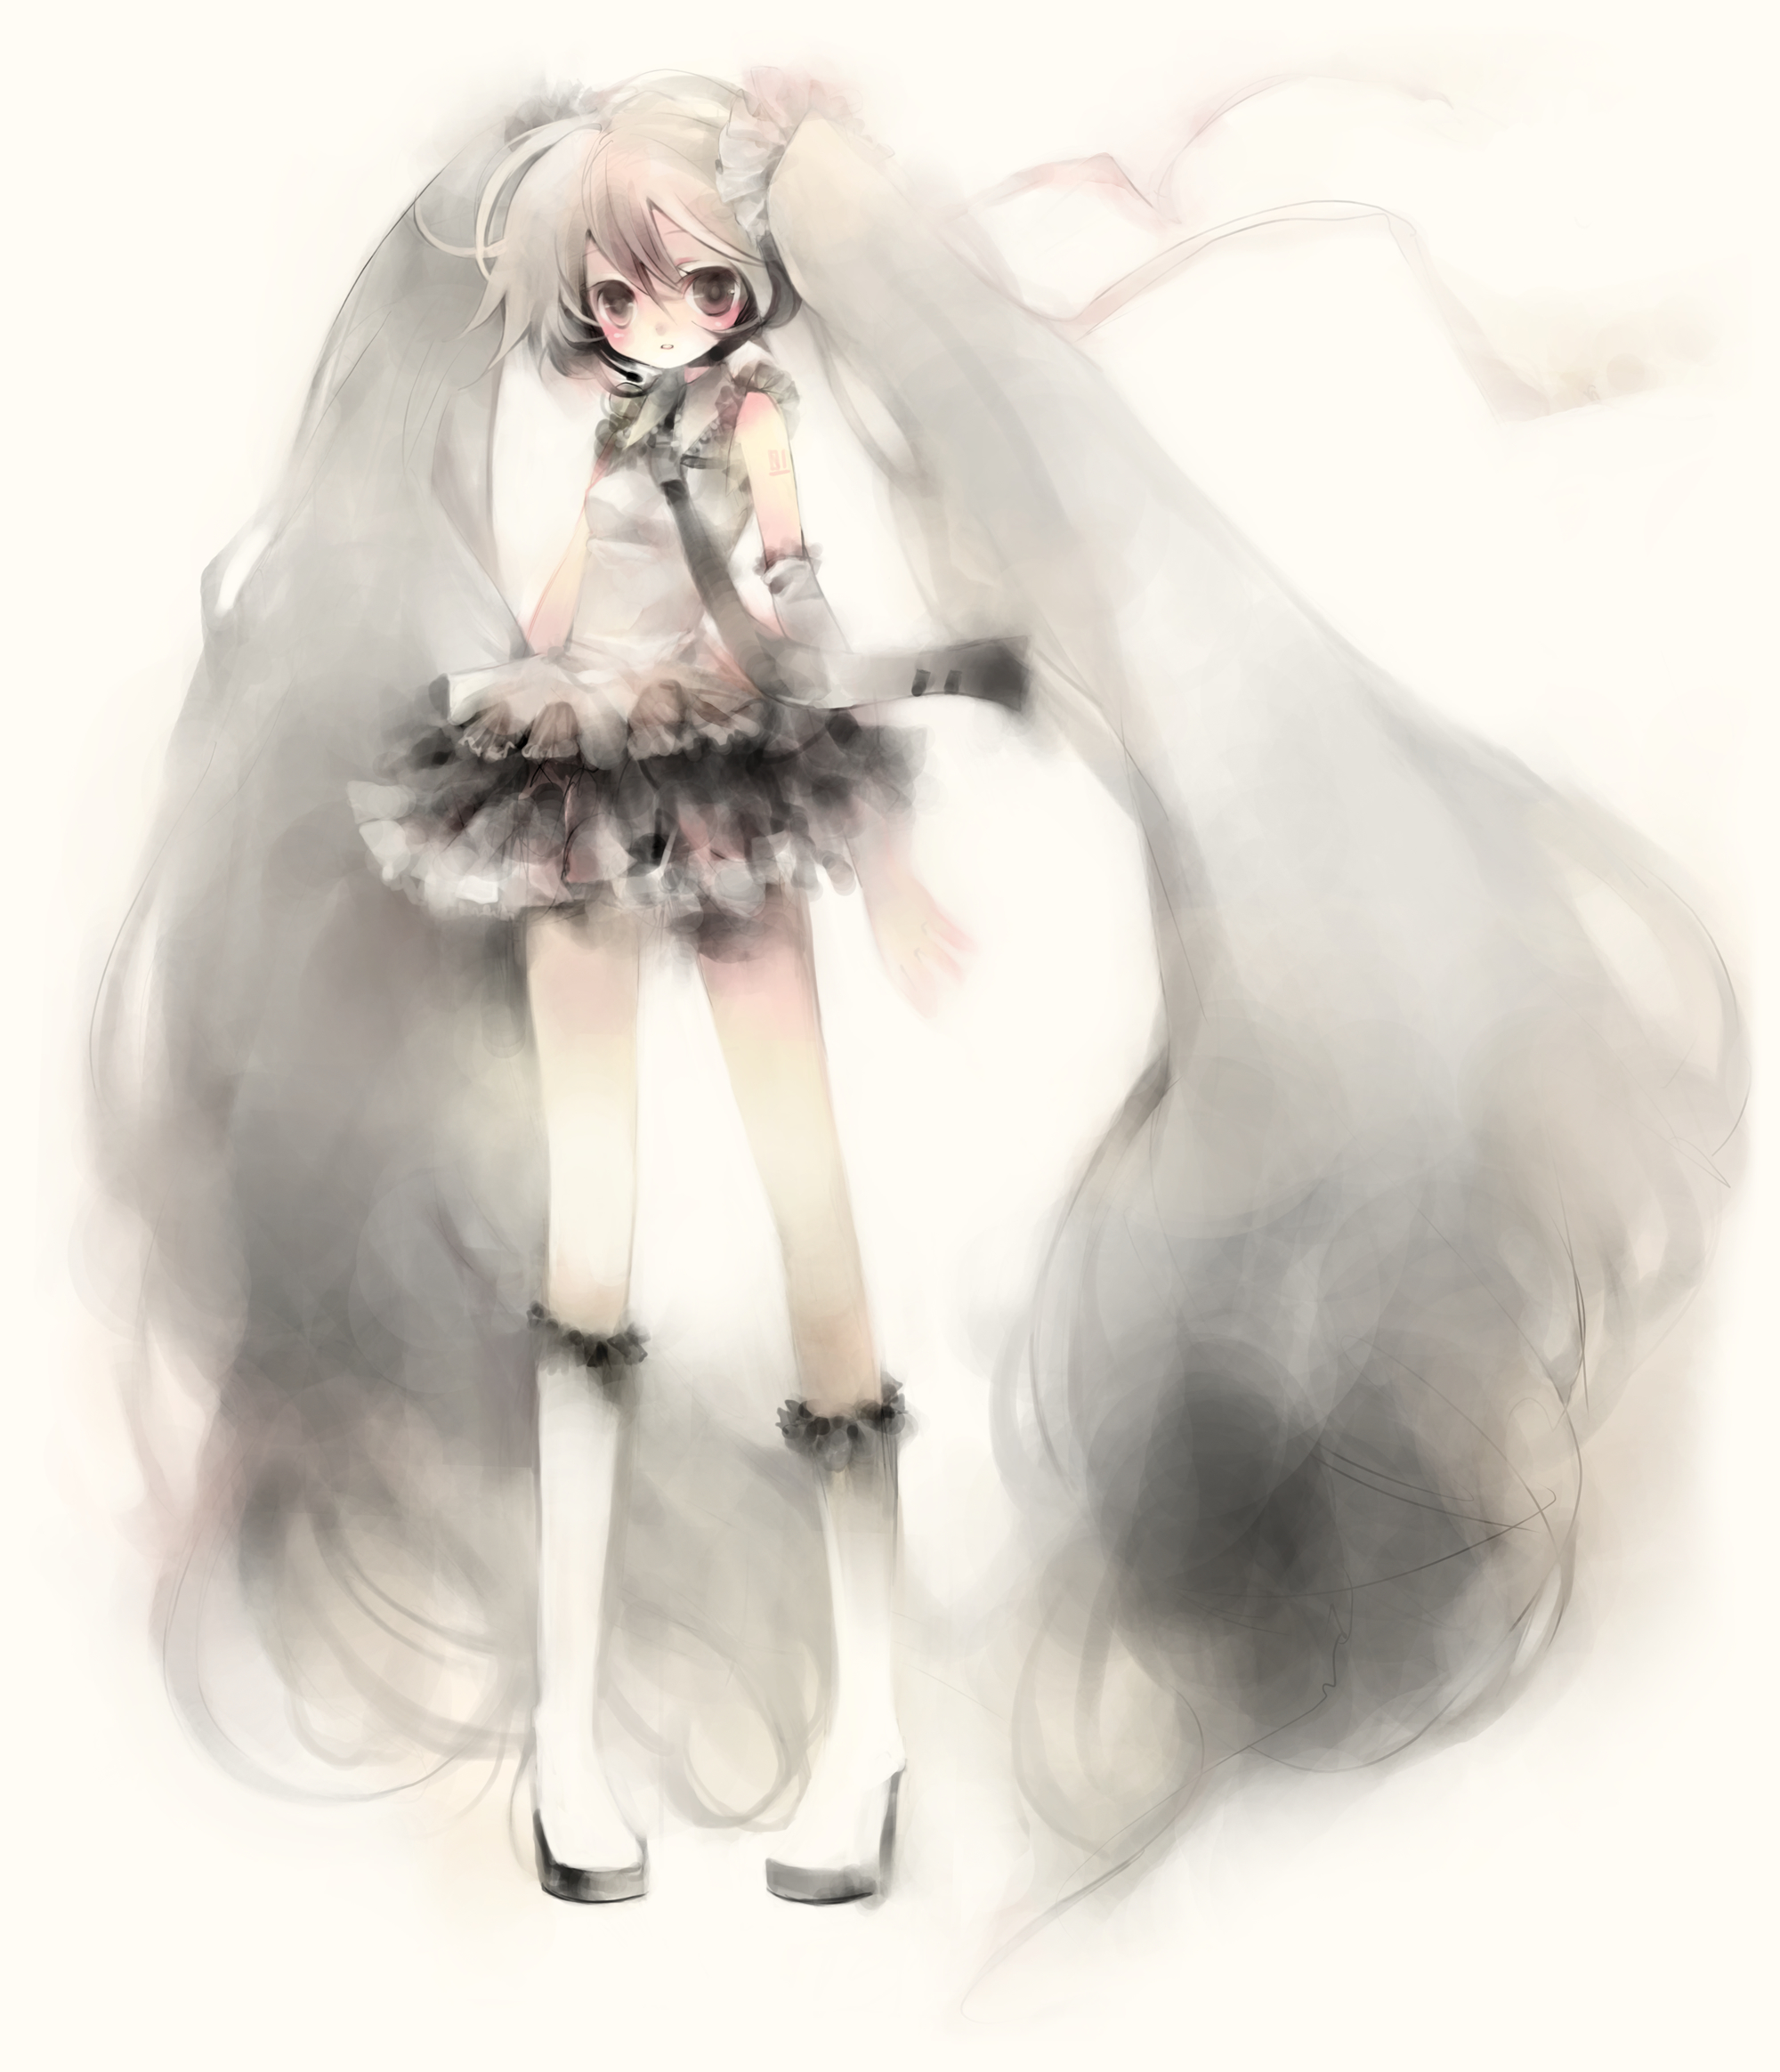 vocaloid hatsune miku grayscale HD Wallpaper